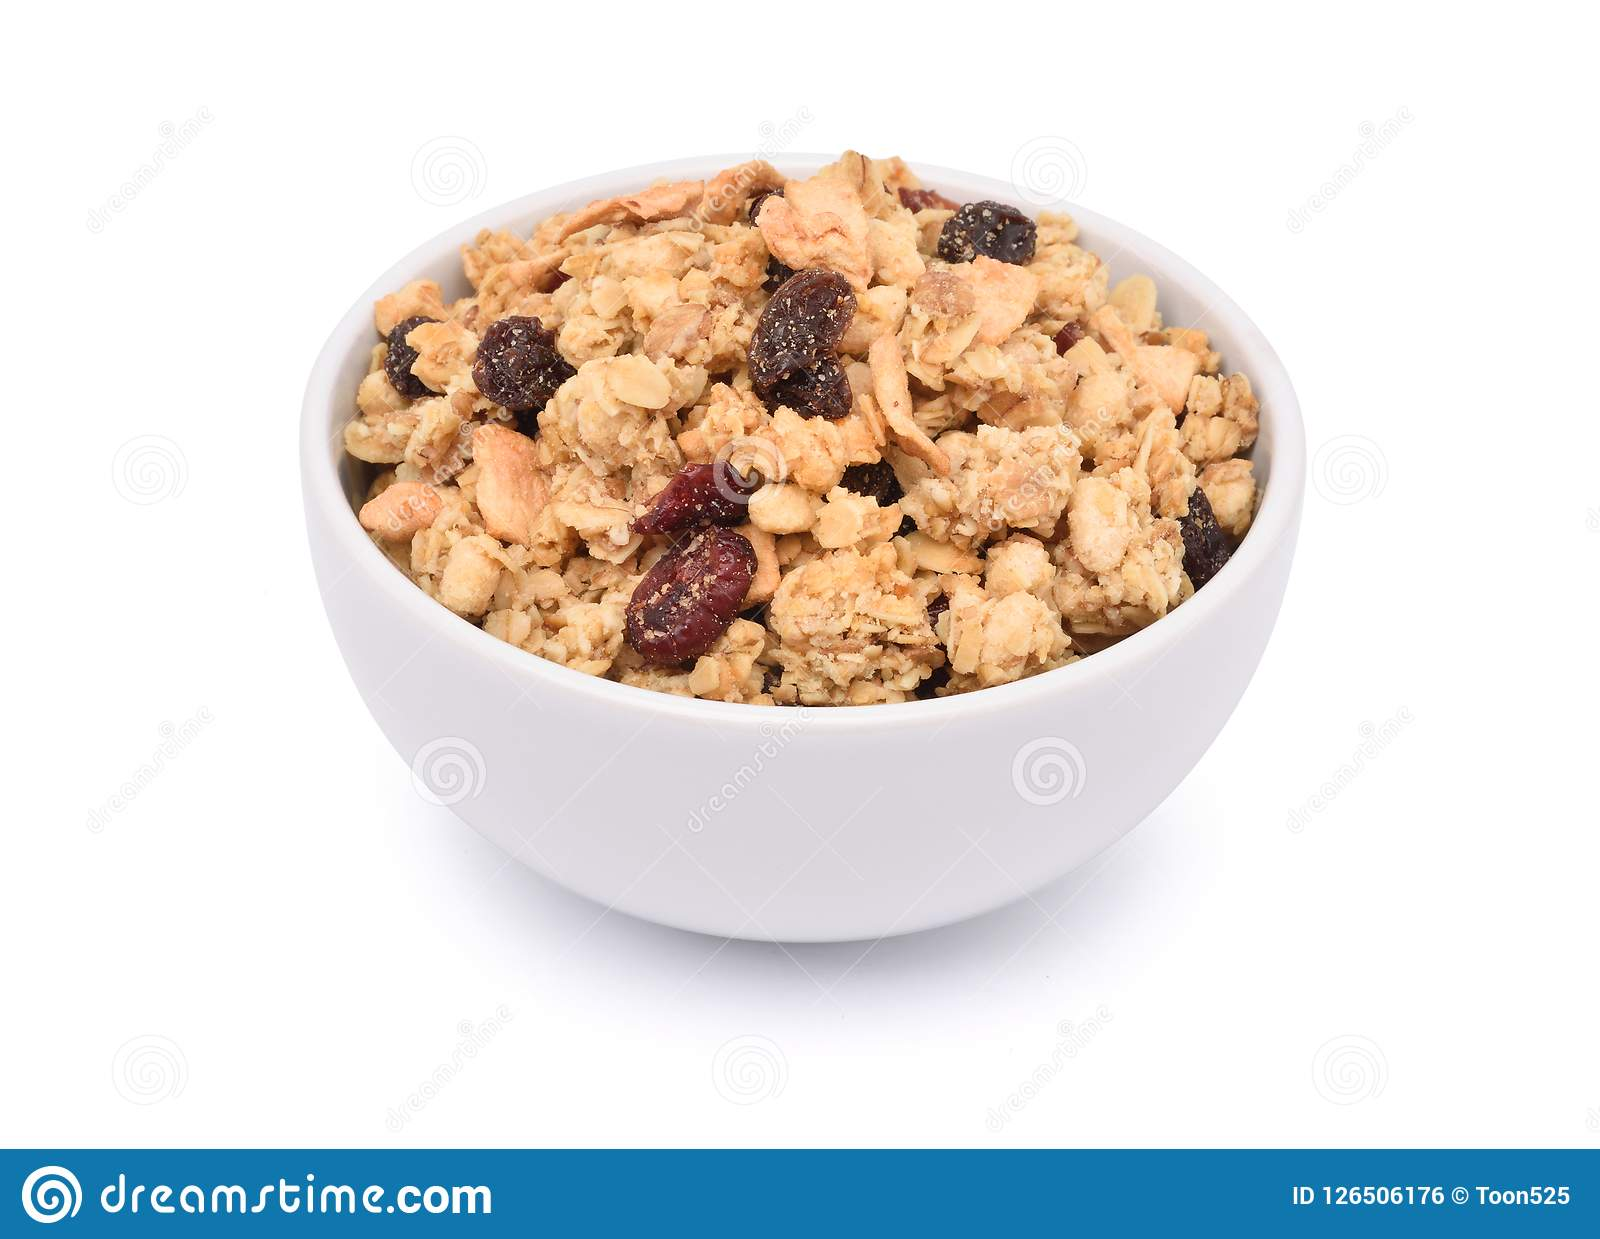 Crunchy oat granola cereal with dried fruits in white bowl